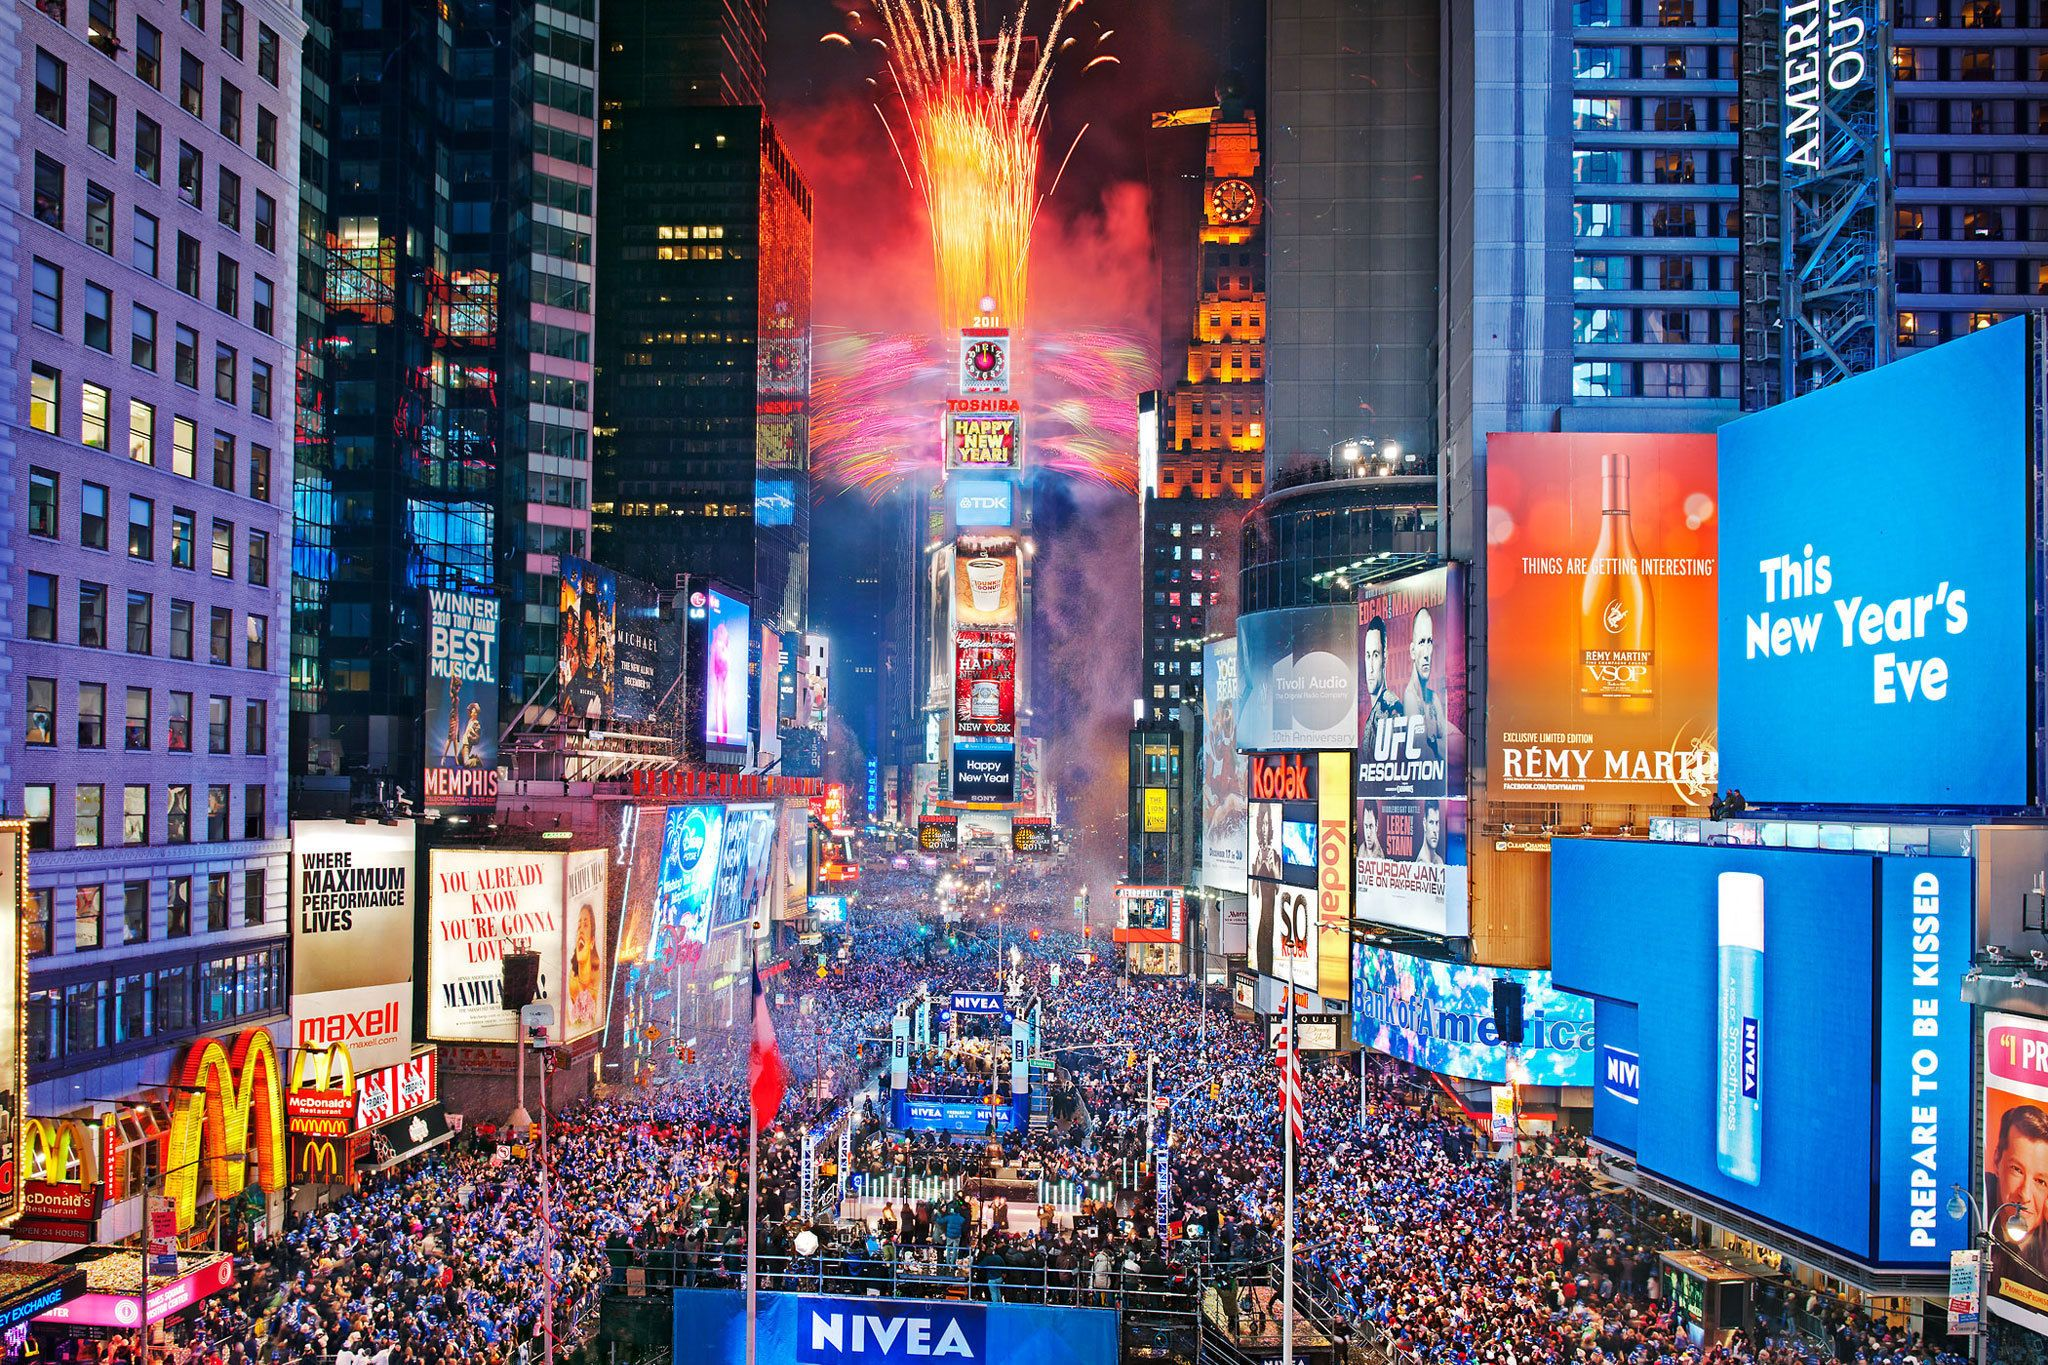 2784x1856 new year new york hd wallpaper background image 2784x1856 id